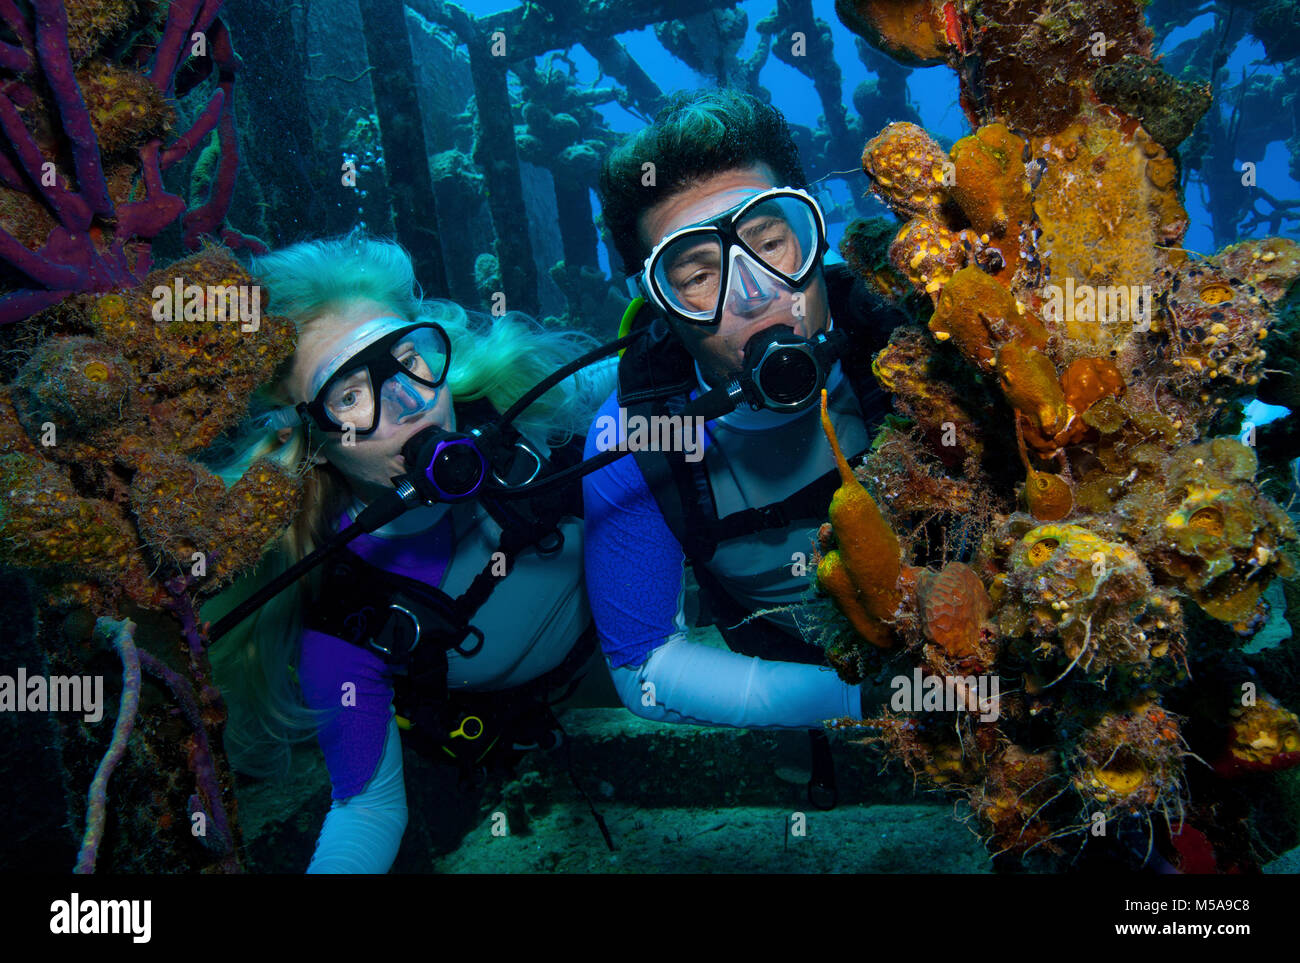 Divers observe marine life attached to the remnants of the hull of a shipwreck dive site. - Stock Image